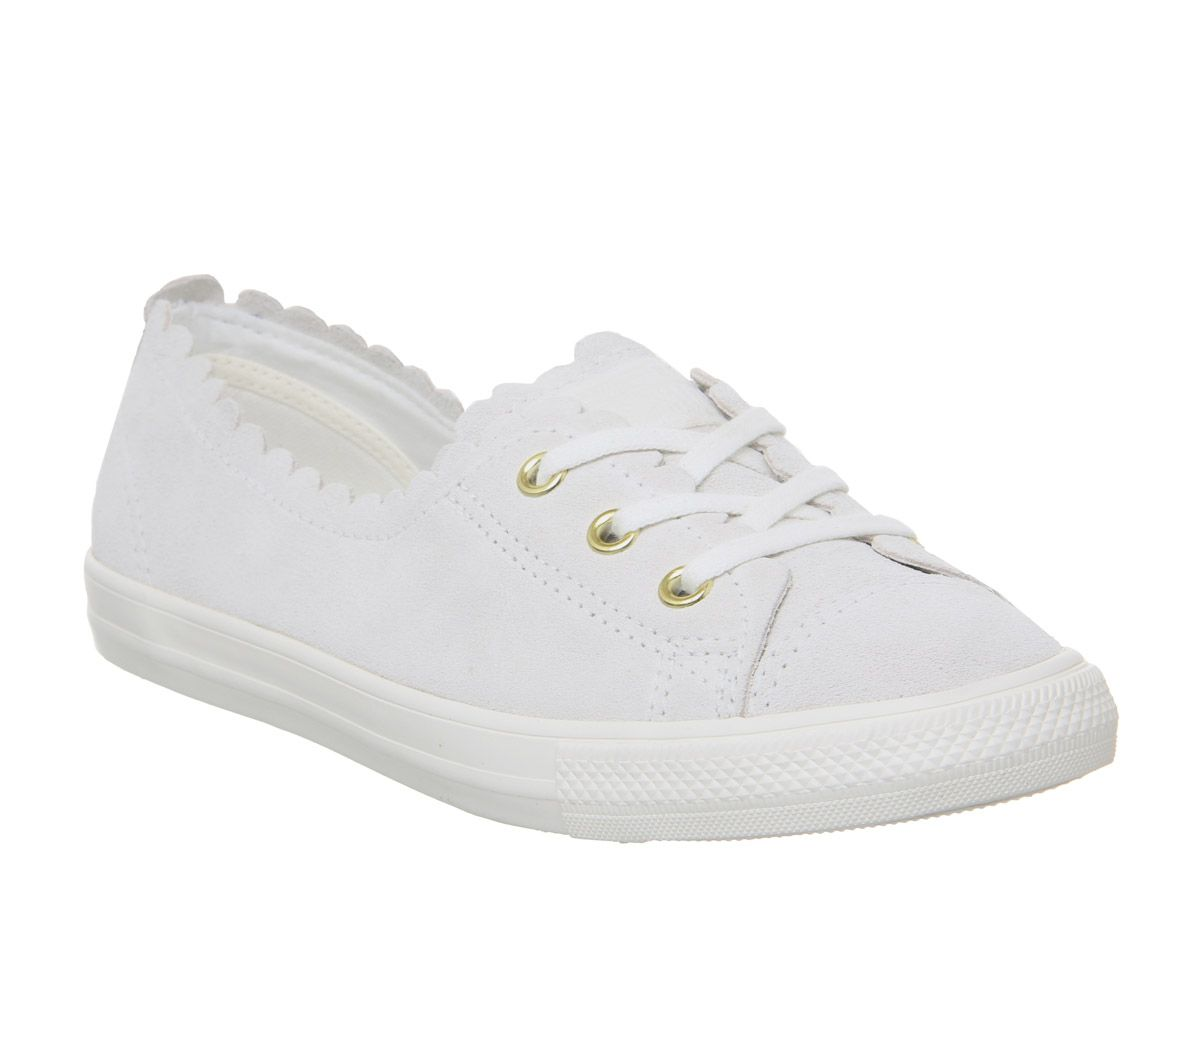 fc033806d096 Sentinel Womens Converse Ctas Ballet Lace Trainers Off White Frill Trainers  Shoes